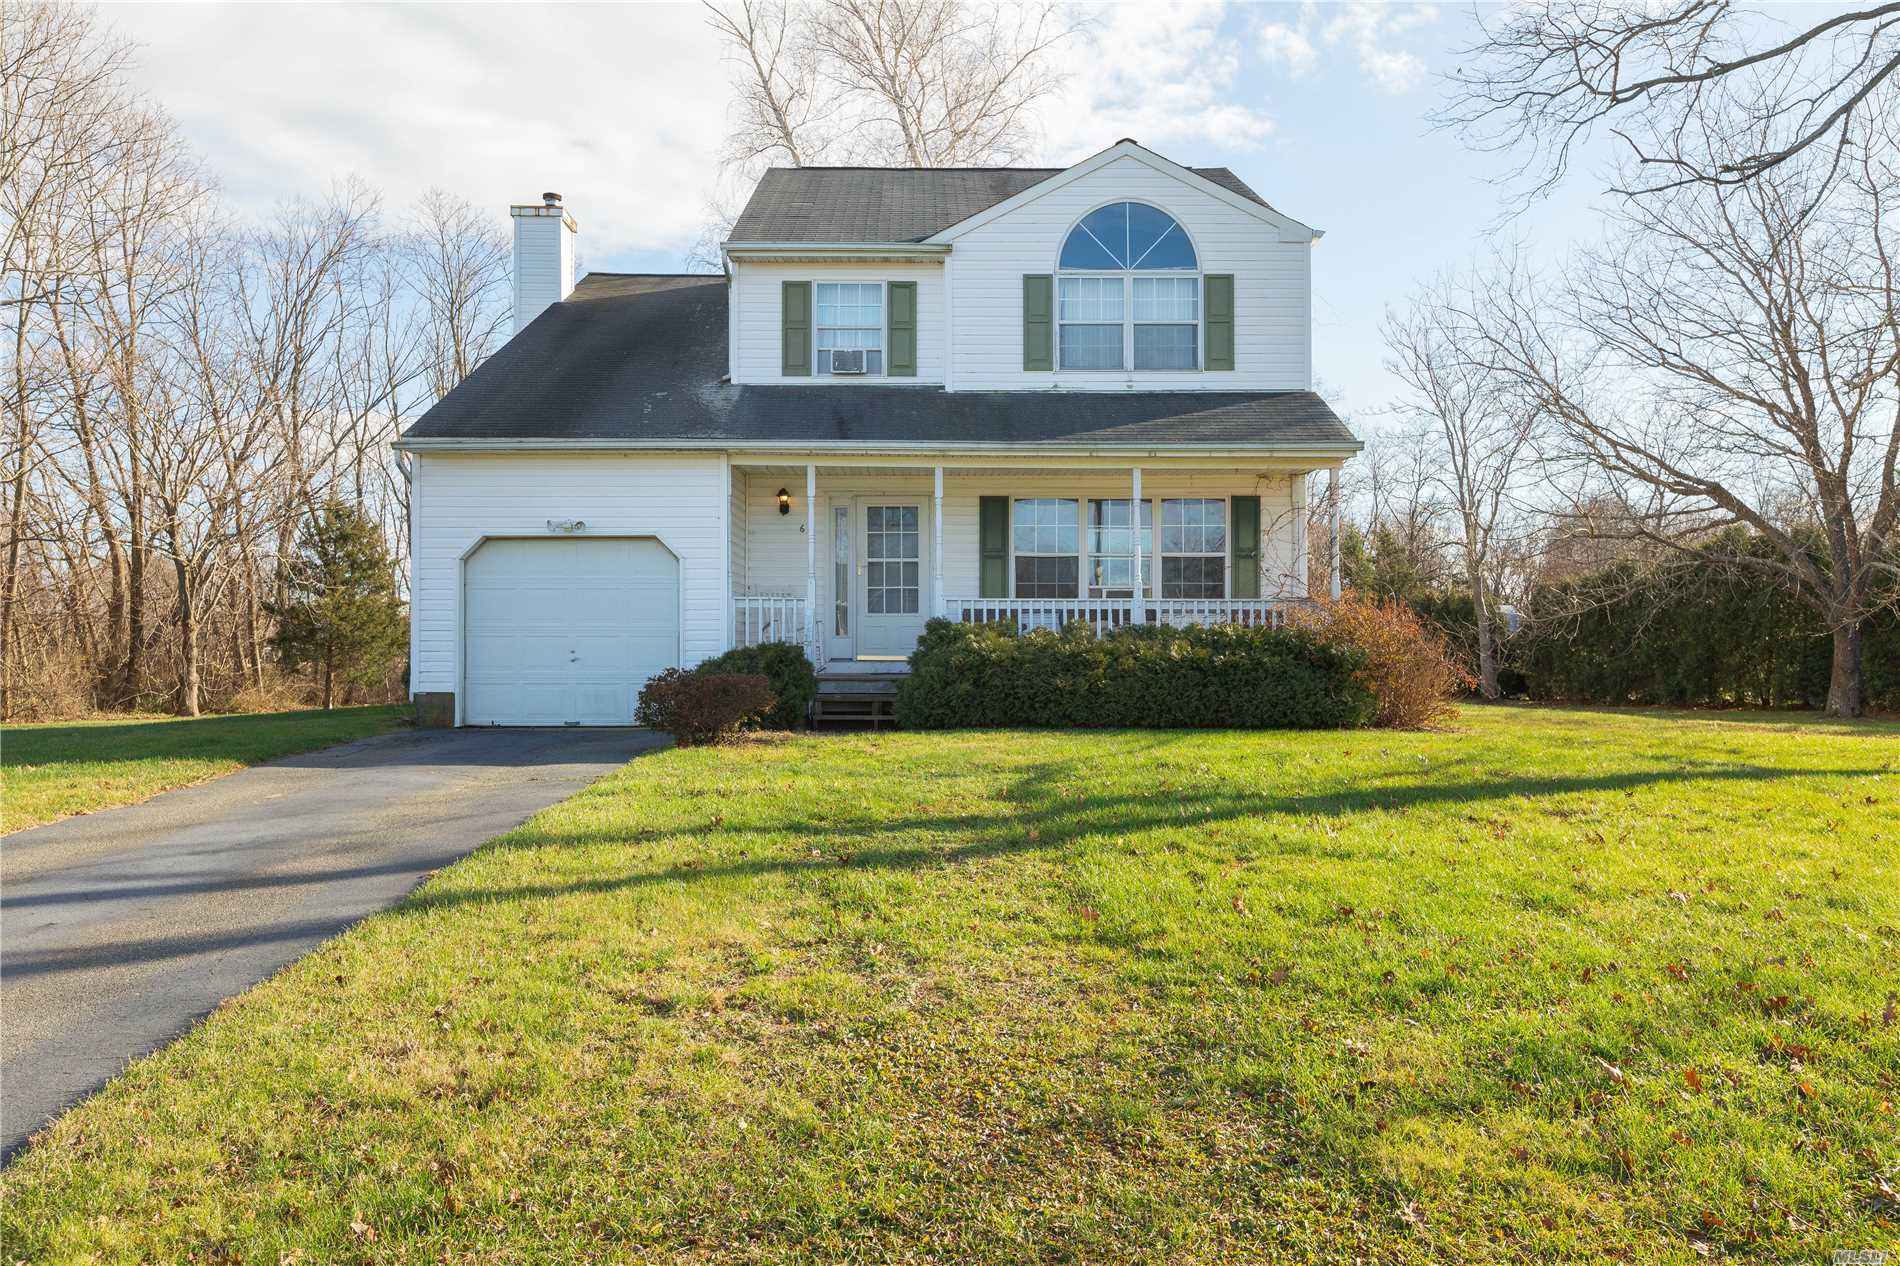 Photo of home for sale at 61 Fox Ln, Jamesport NY